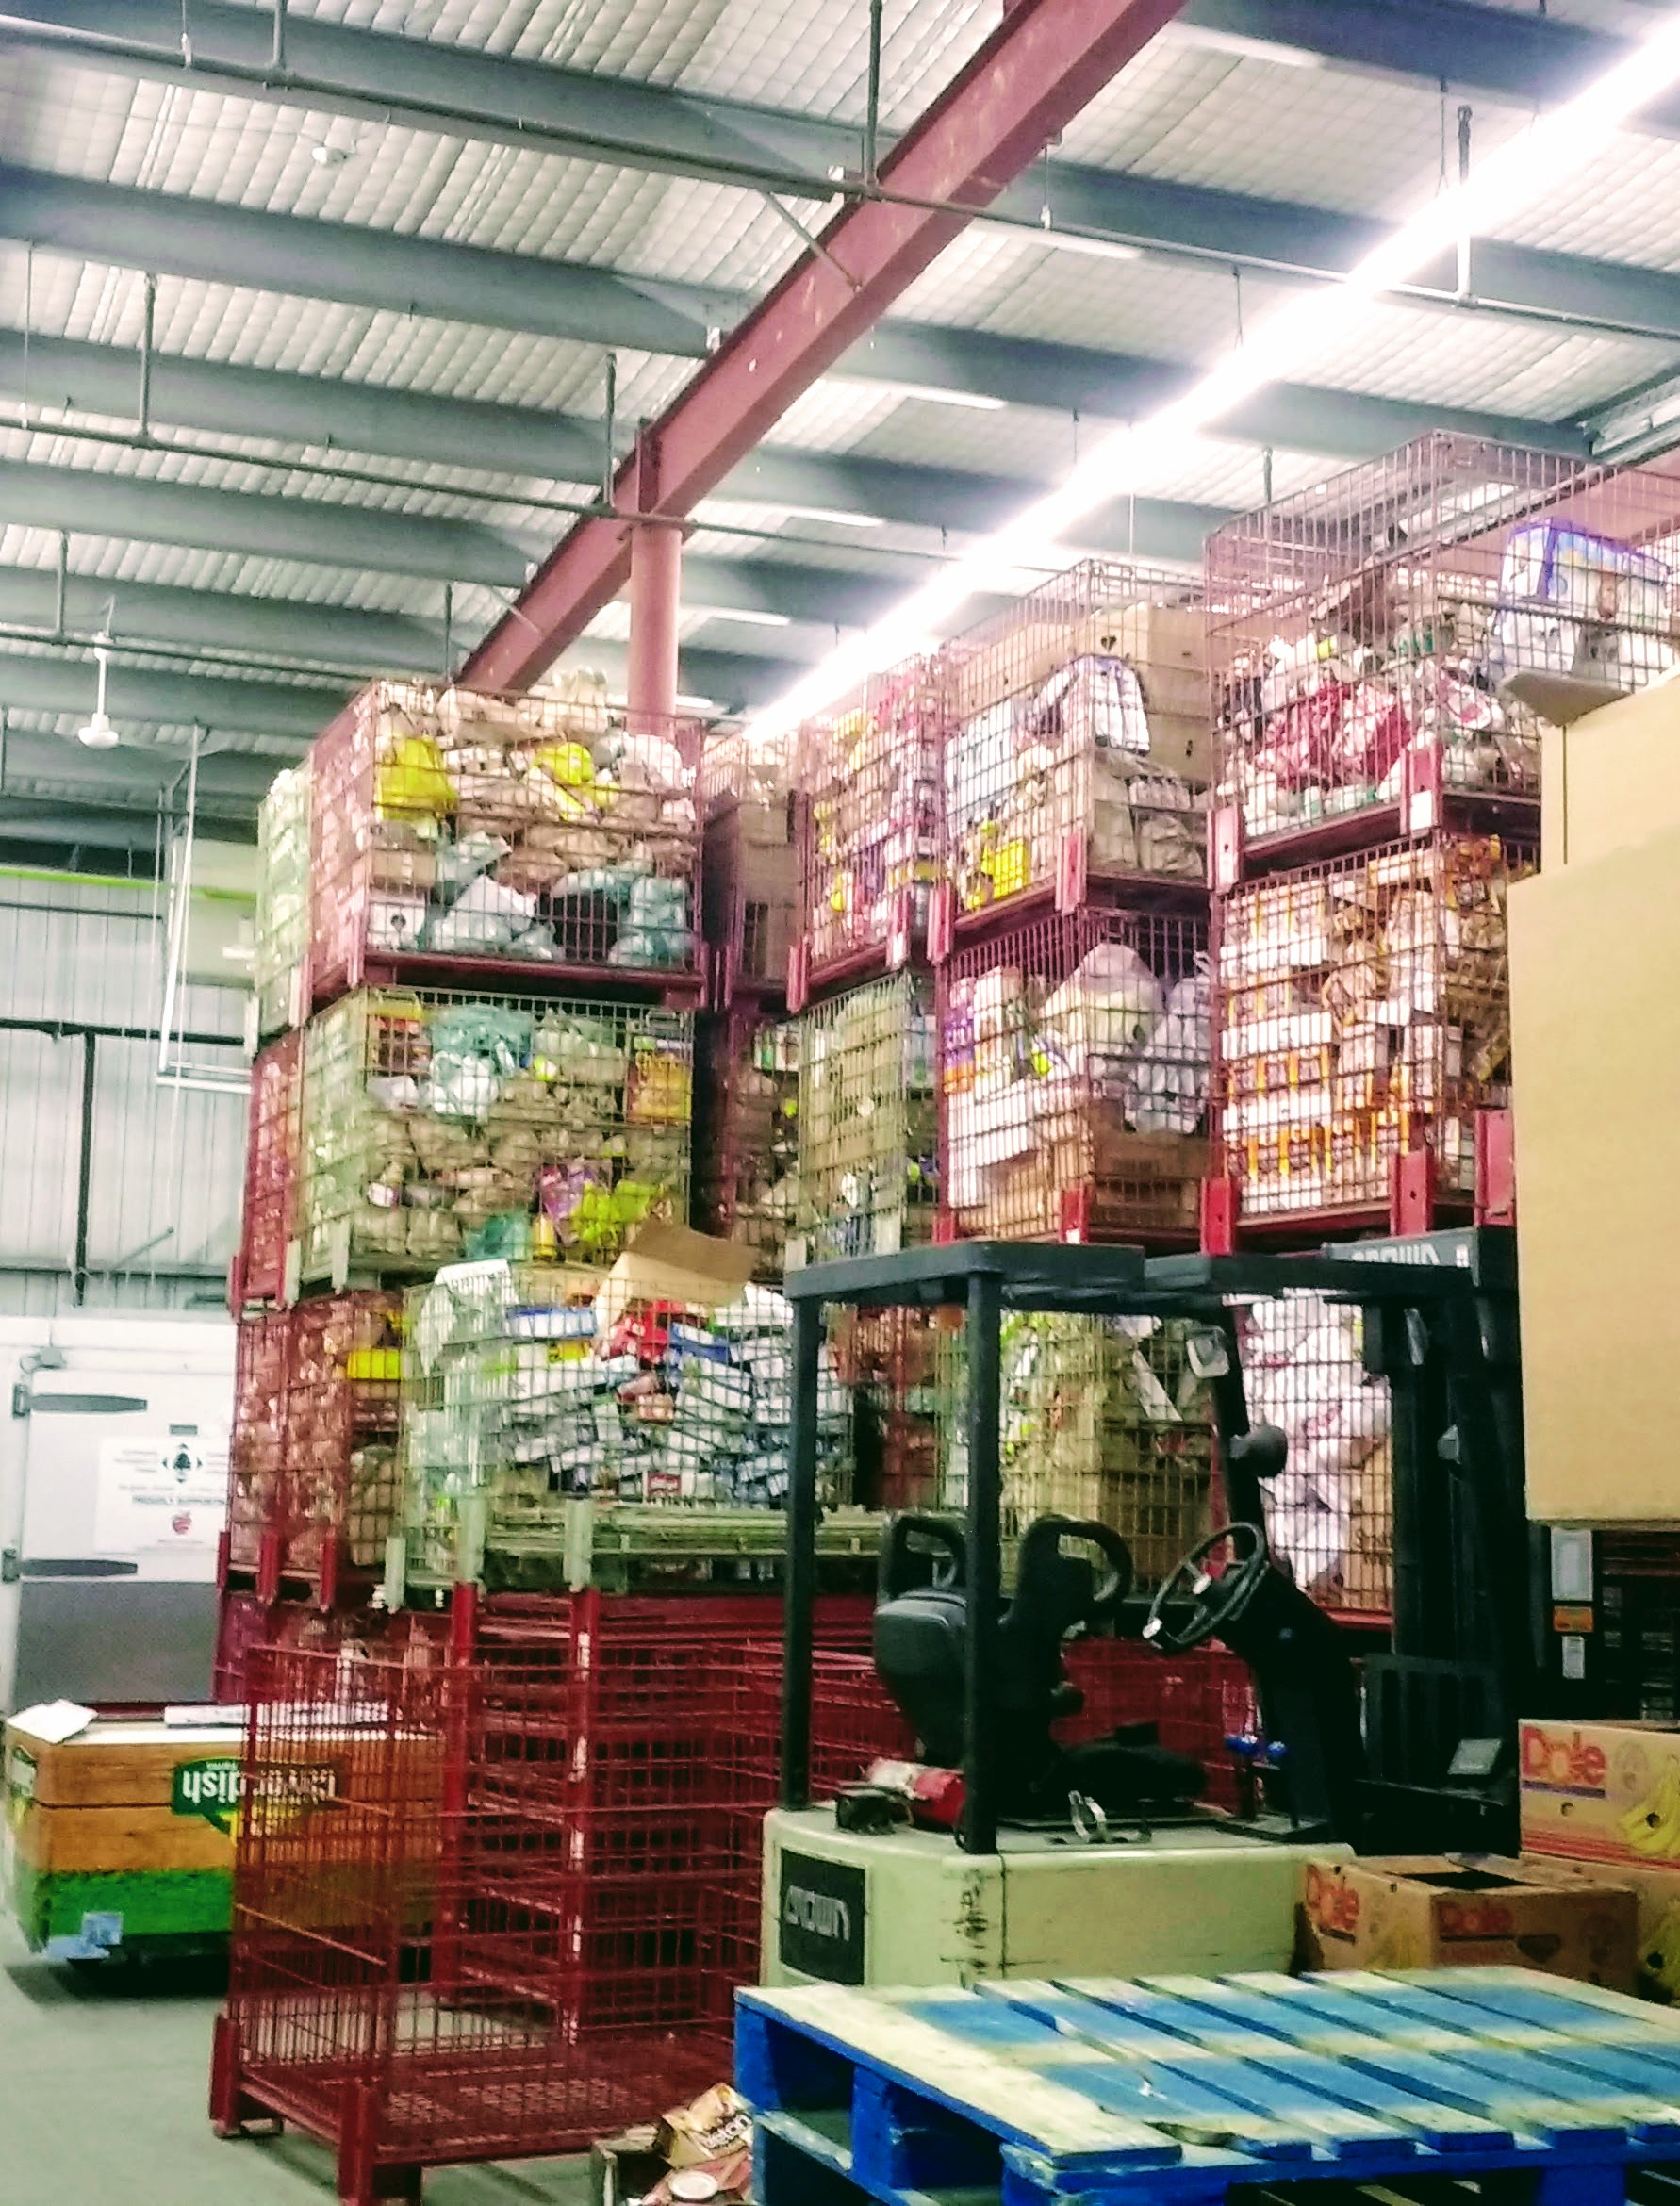 Ottawa Food Bank warehouse bins of non-perishable food